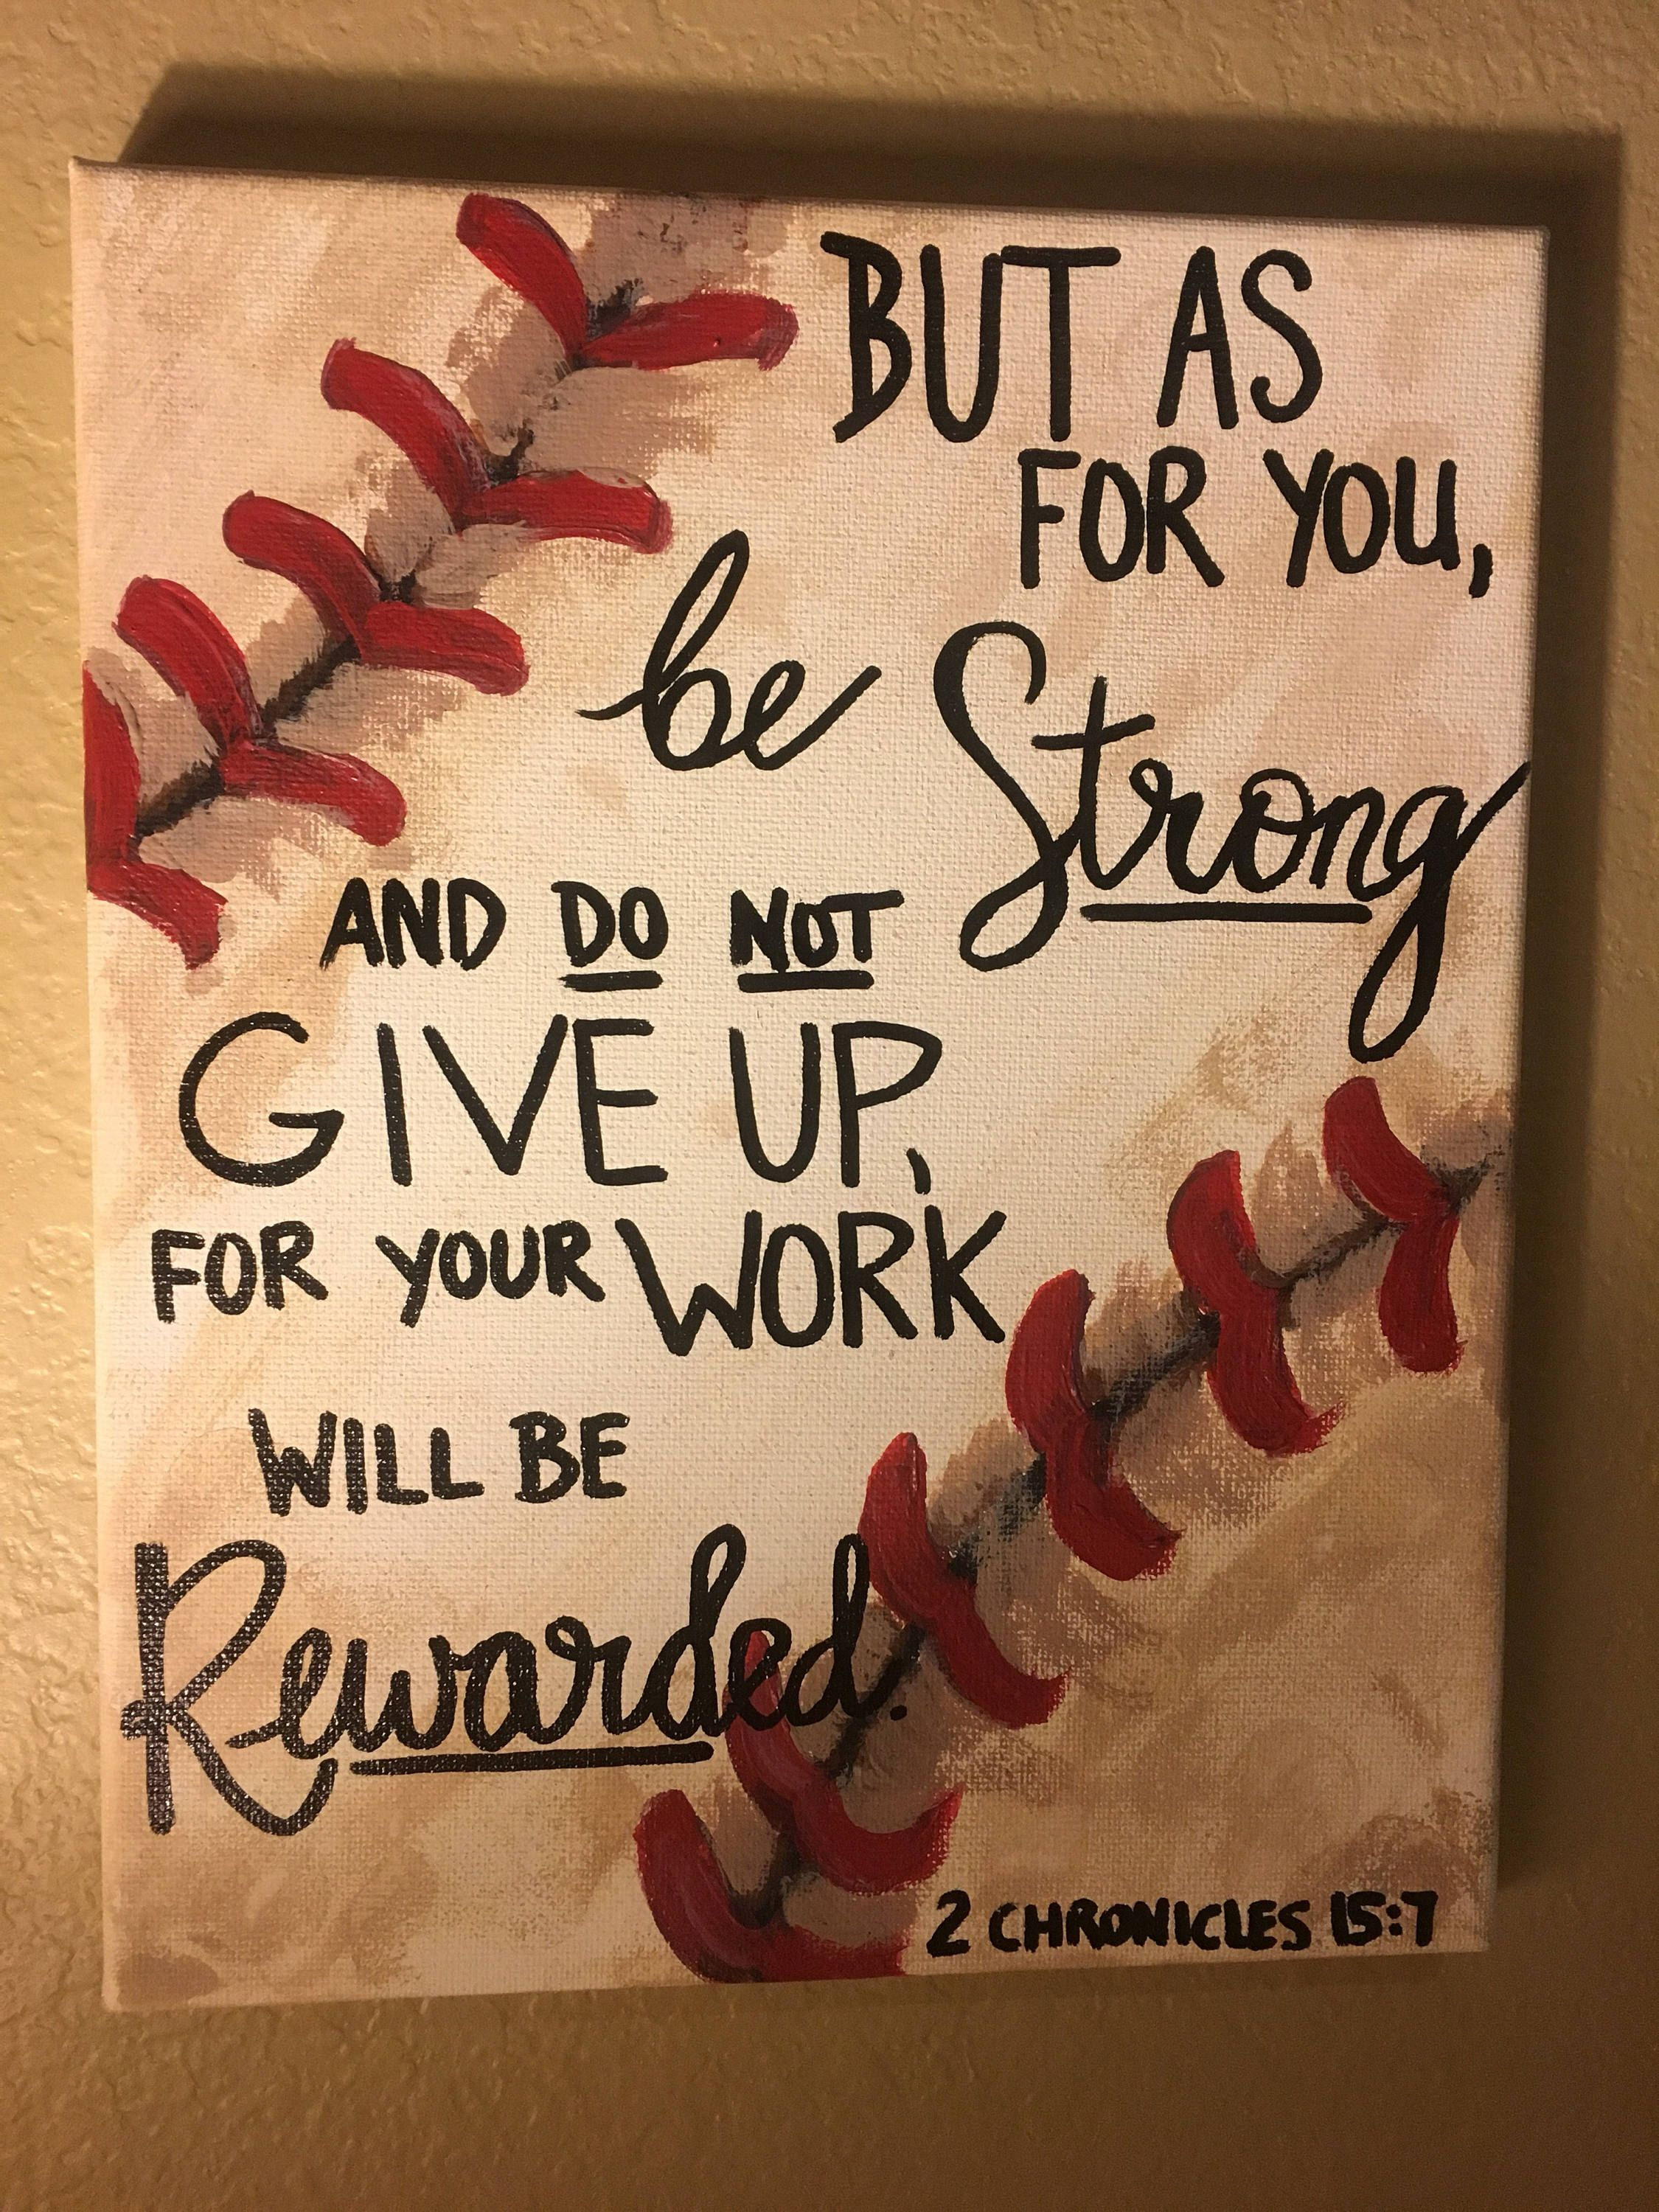 Baseball Quotes For Kids Baseball Decor Bible quote 2 Chronicles 15:7 | Ampersand Treasures  Baseball Quotes For Kids